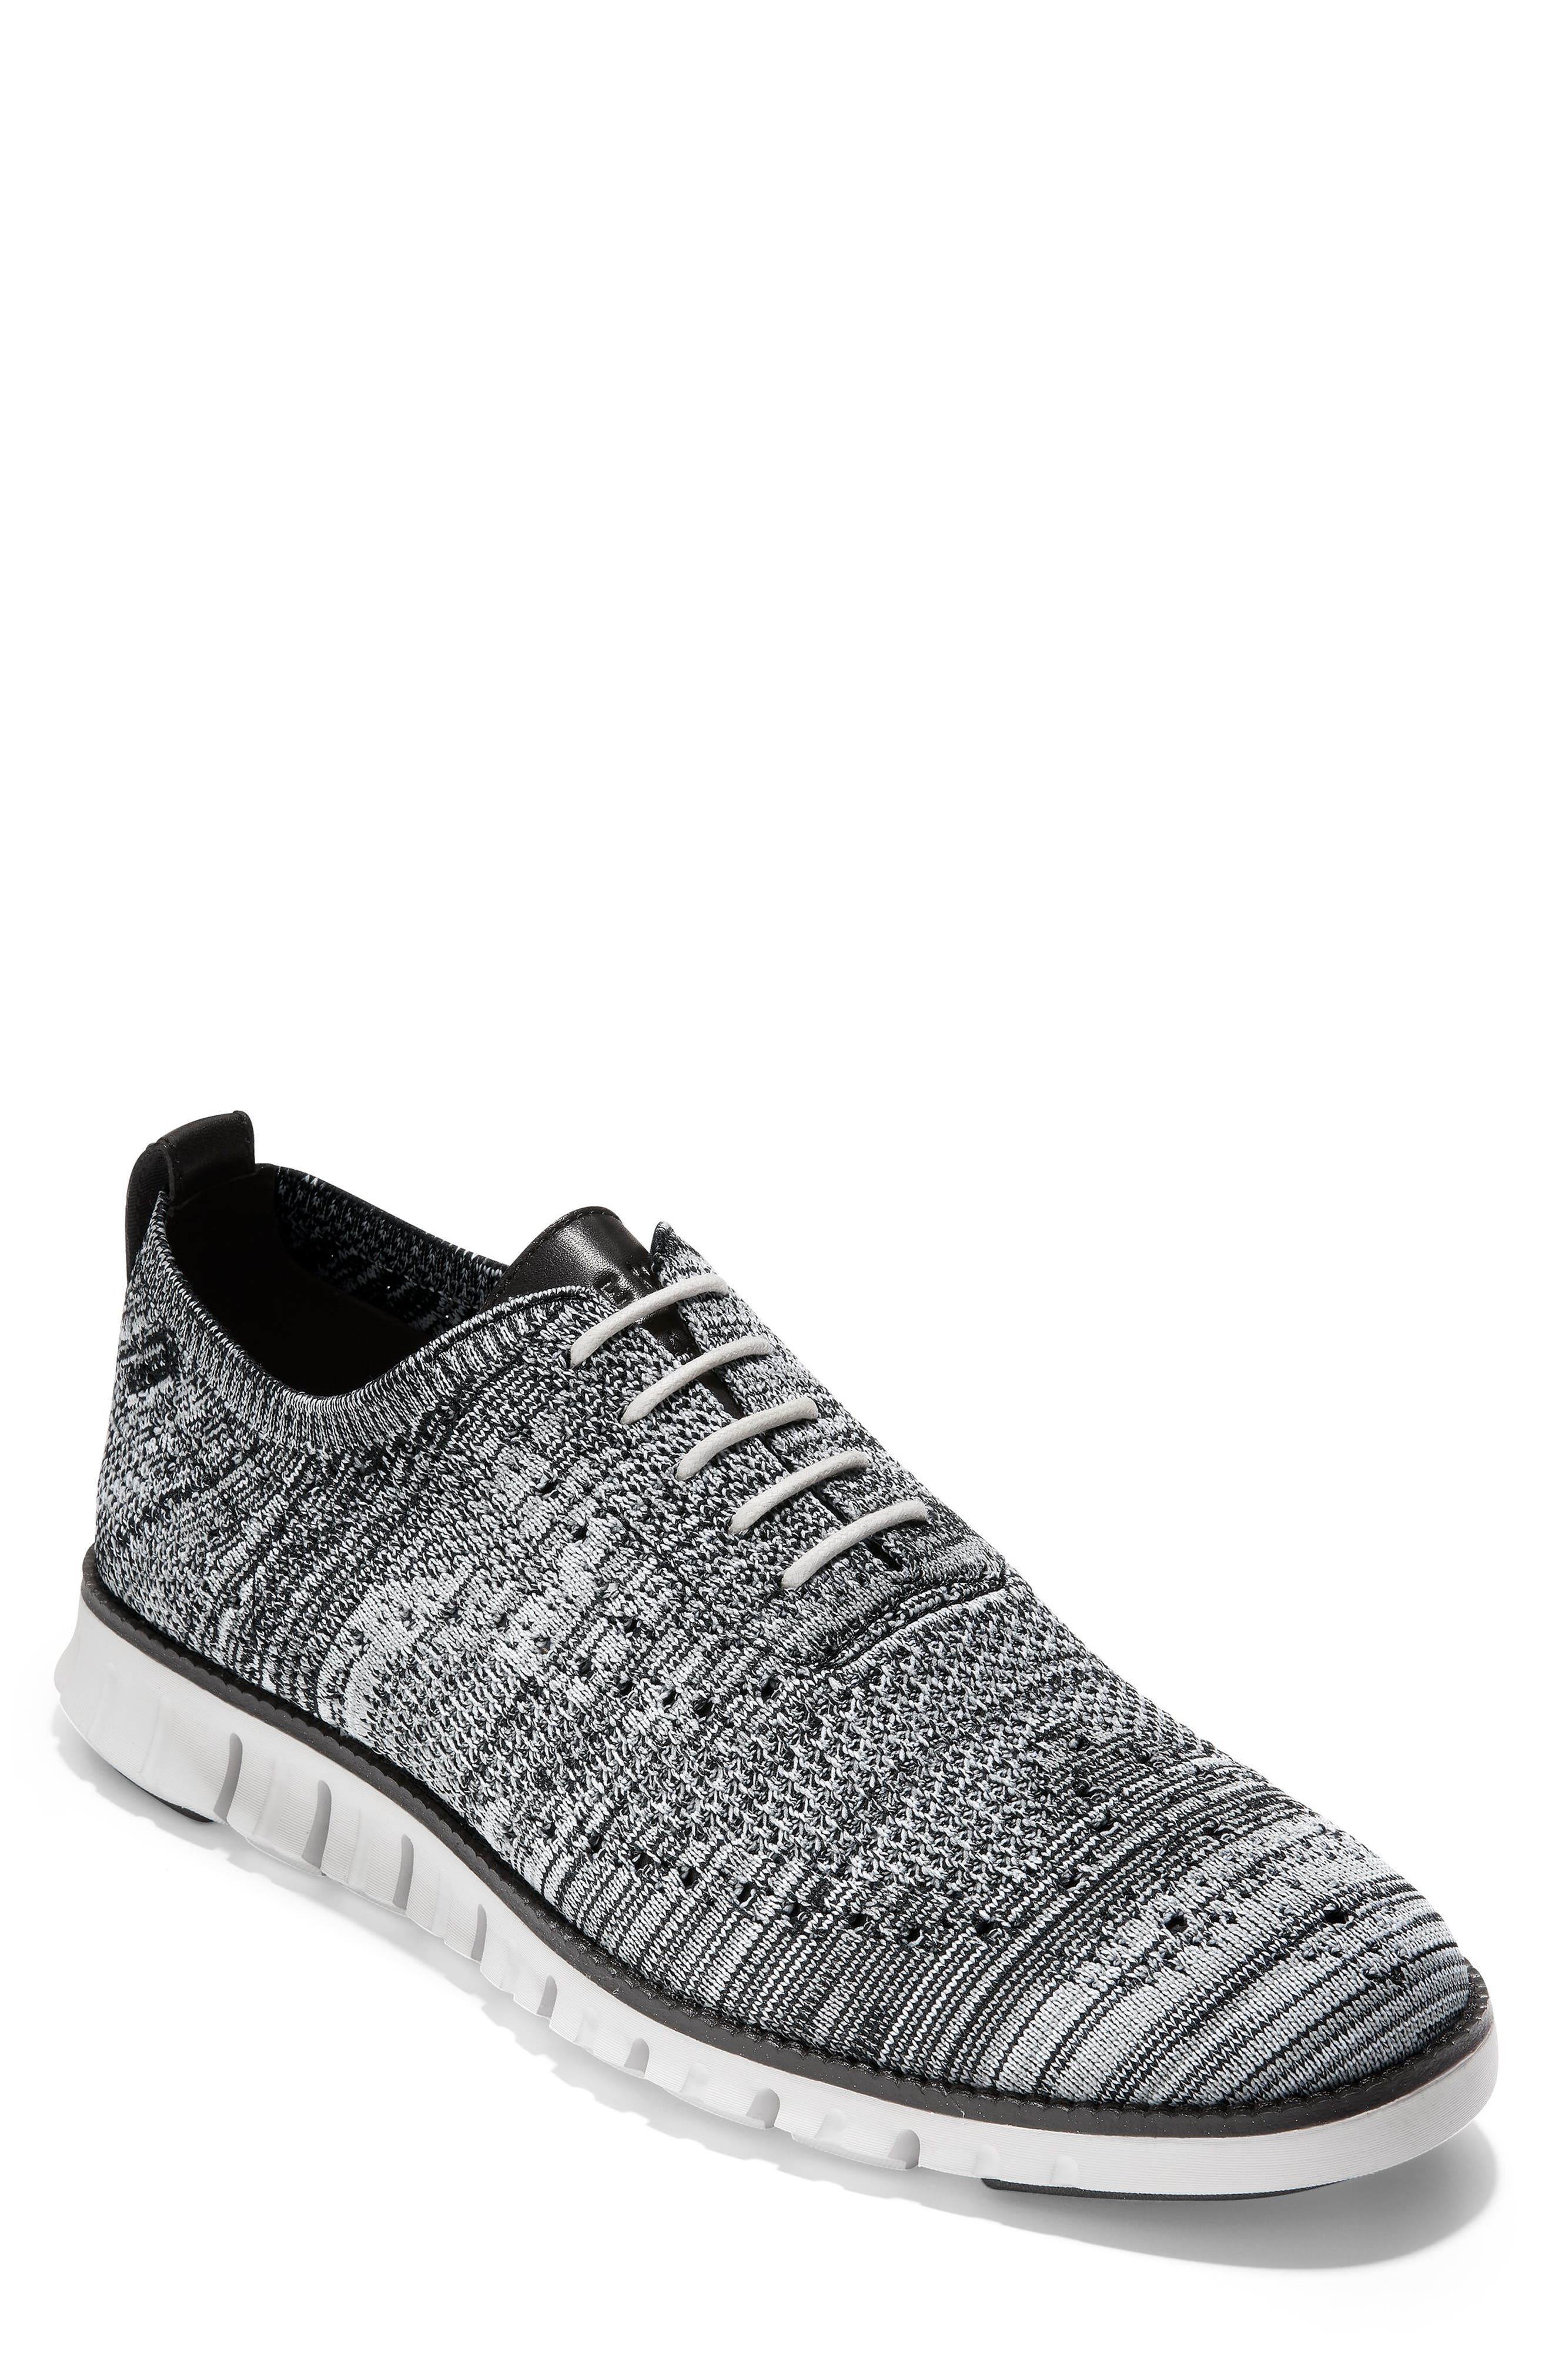 COLE HAAN ZeroGrand Stitchlite Oxford, Main, color, BLACK/ OPTIC WHITE/ SLEET KNIT